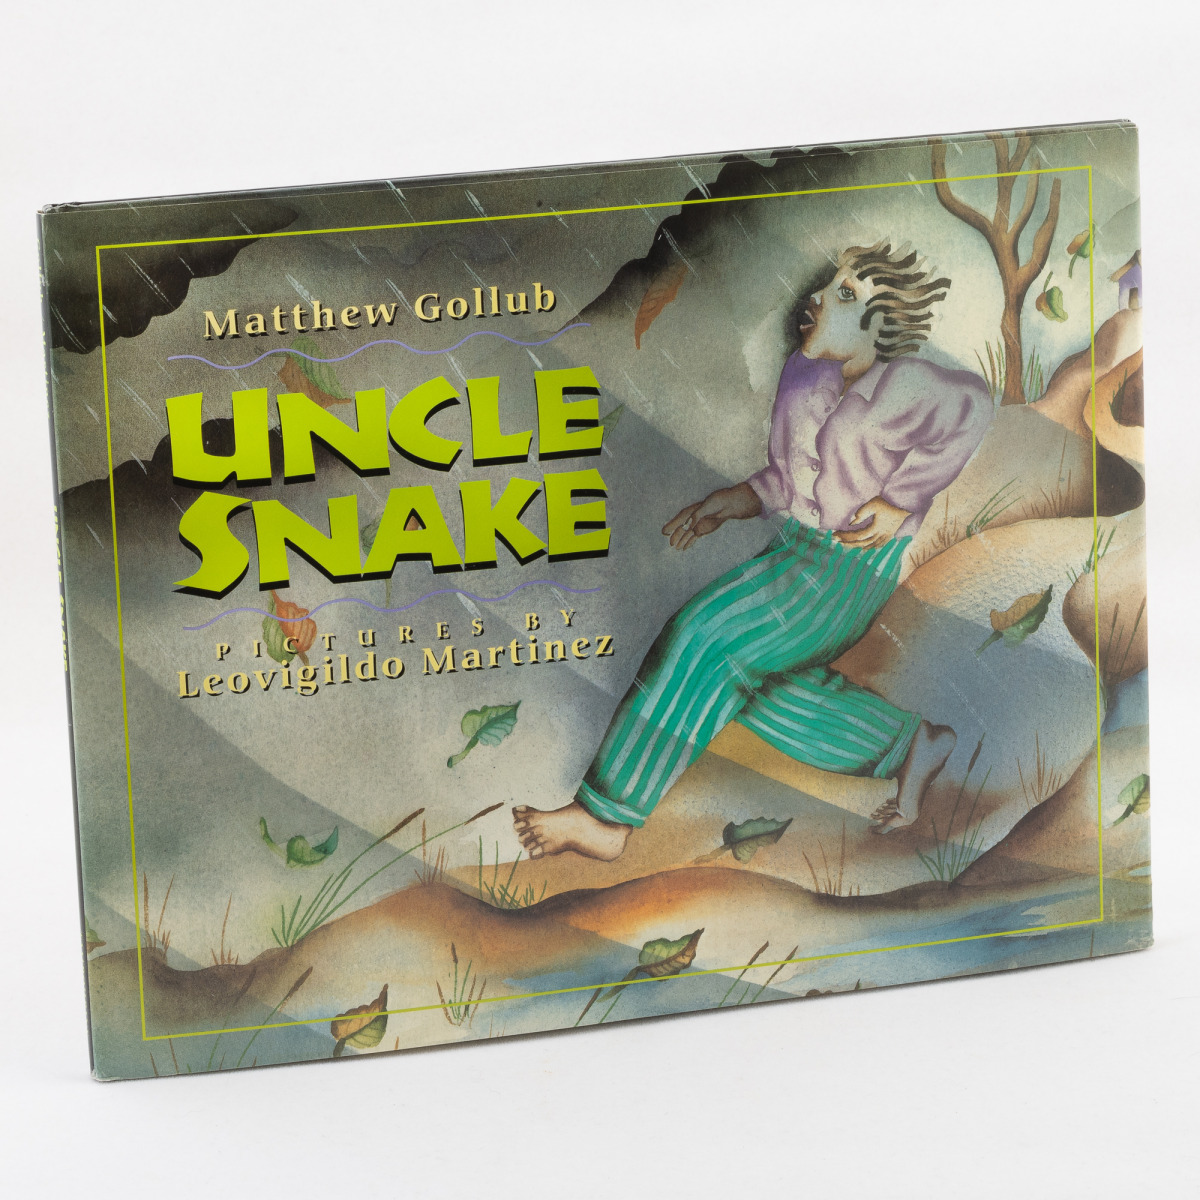 Uncle Snake By Matthew Gollub. Illustrated by Leovigildo Martínez